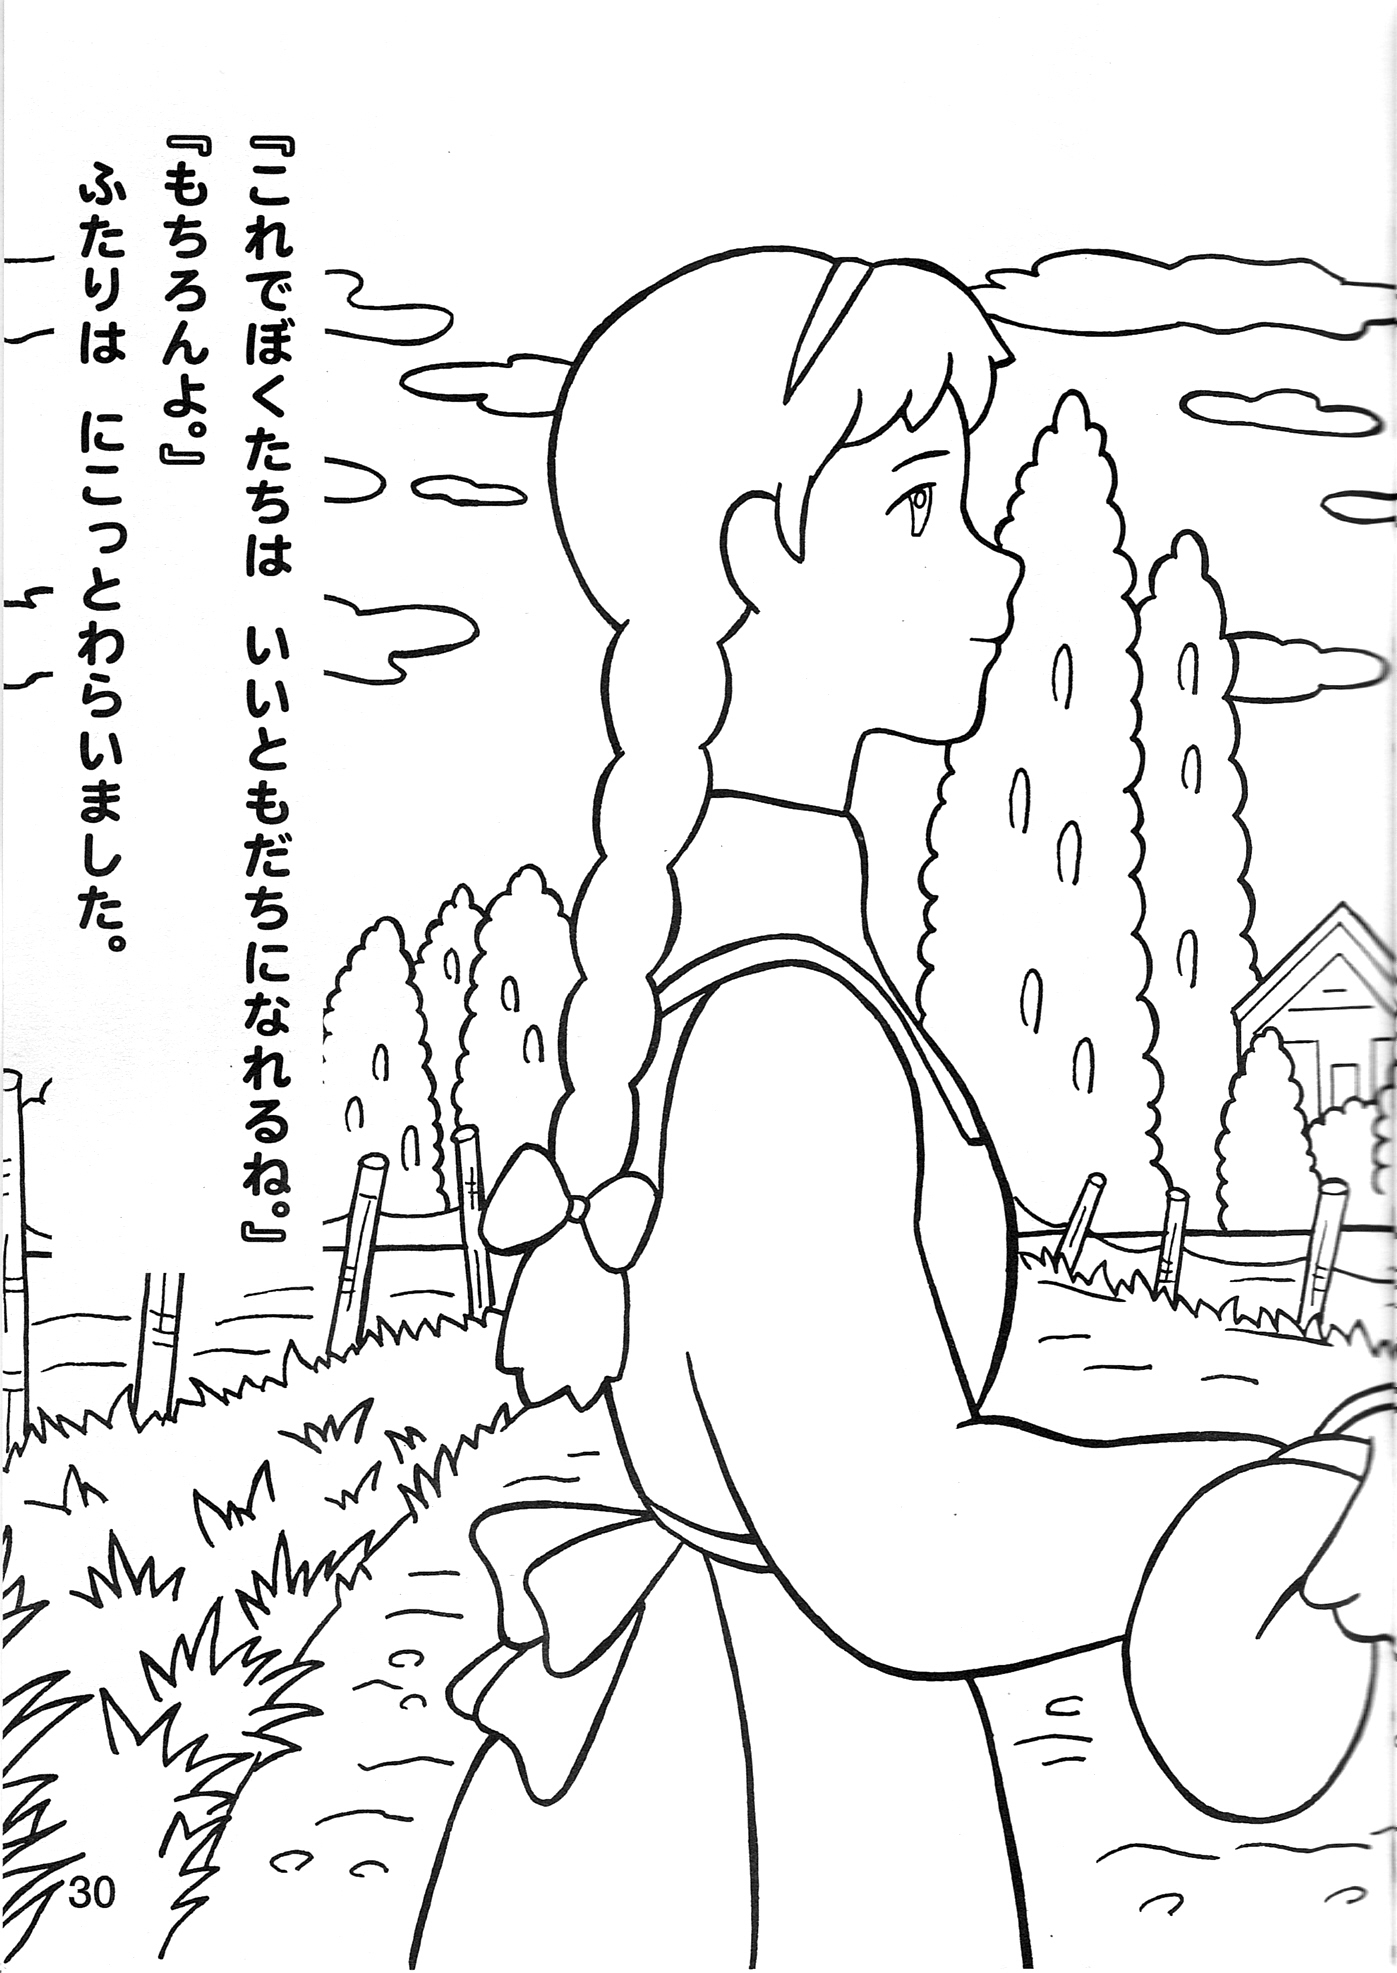 Anne Of Green Gables Coloring Pages - Democraciaejustica